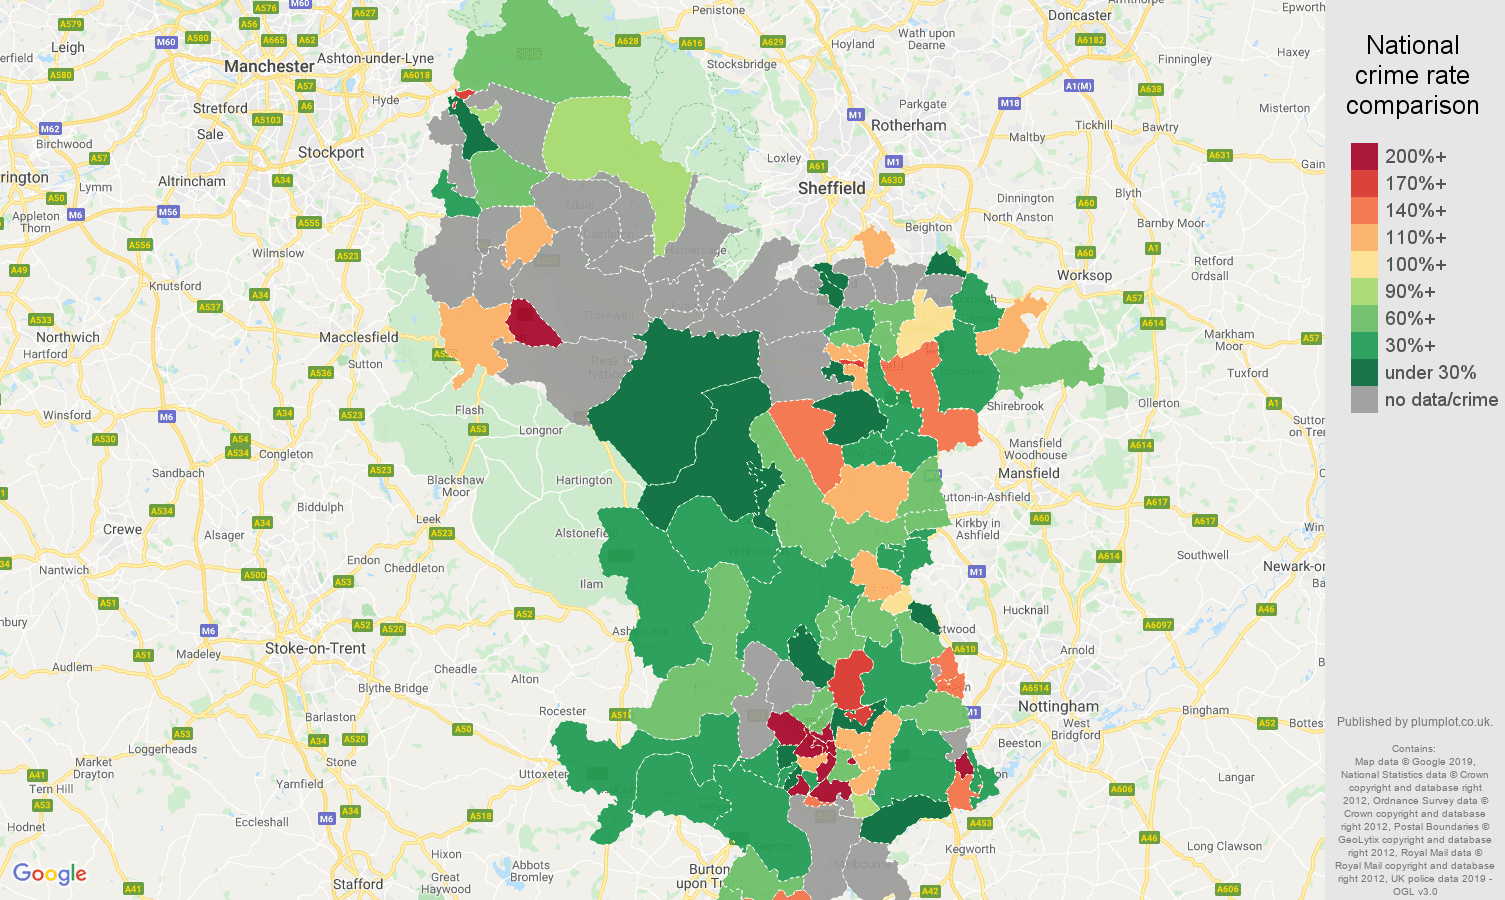 Derbyshire possession of weapons crime rate comparison map